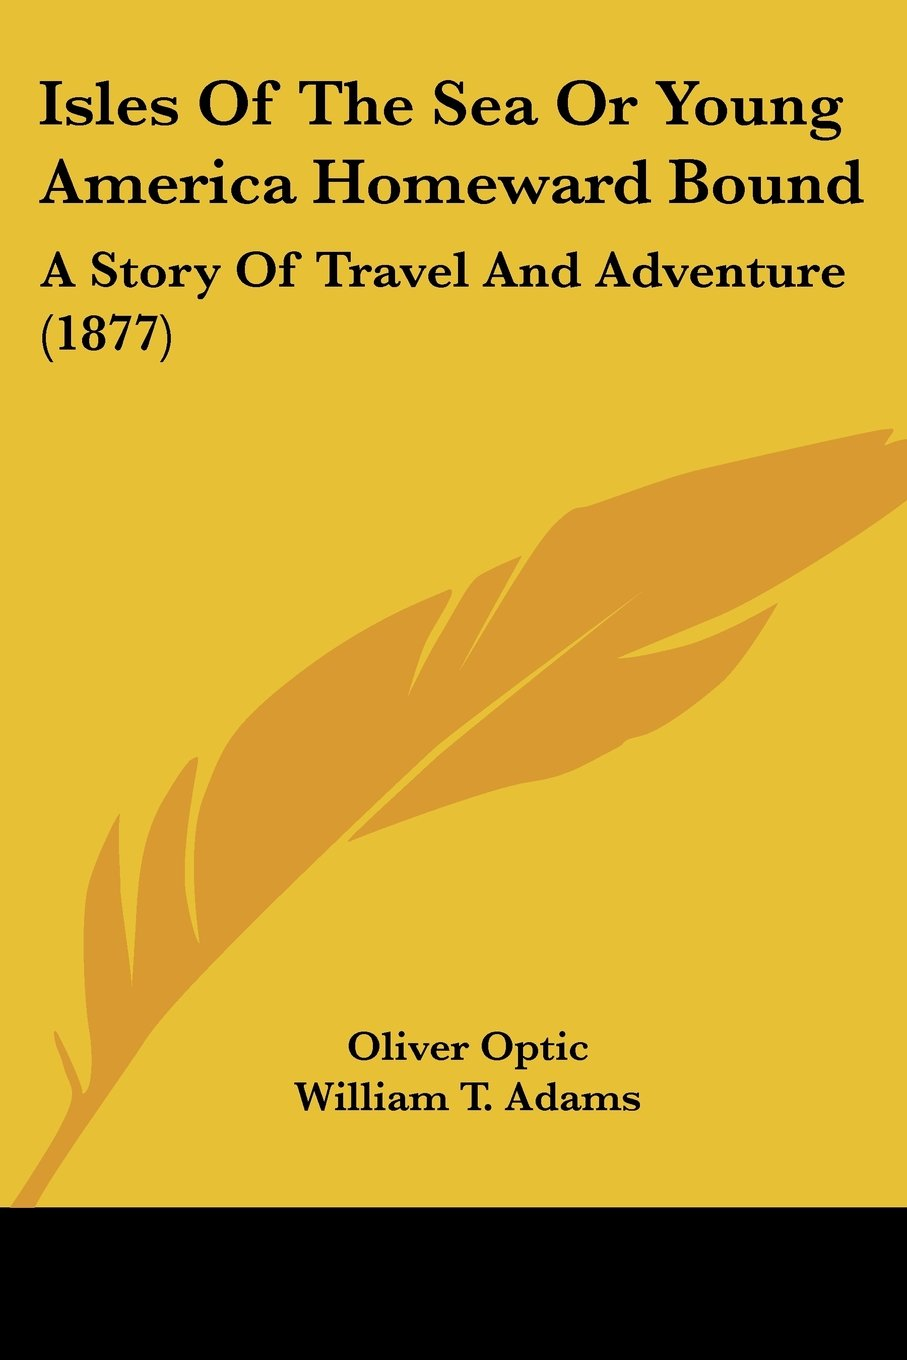 Read Online Isles Of The Sea Or Young America Homeward Bound: A Story Of Travel And Adventure (1877) ePub fb2 ebook